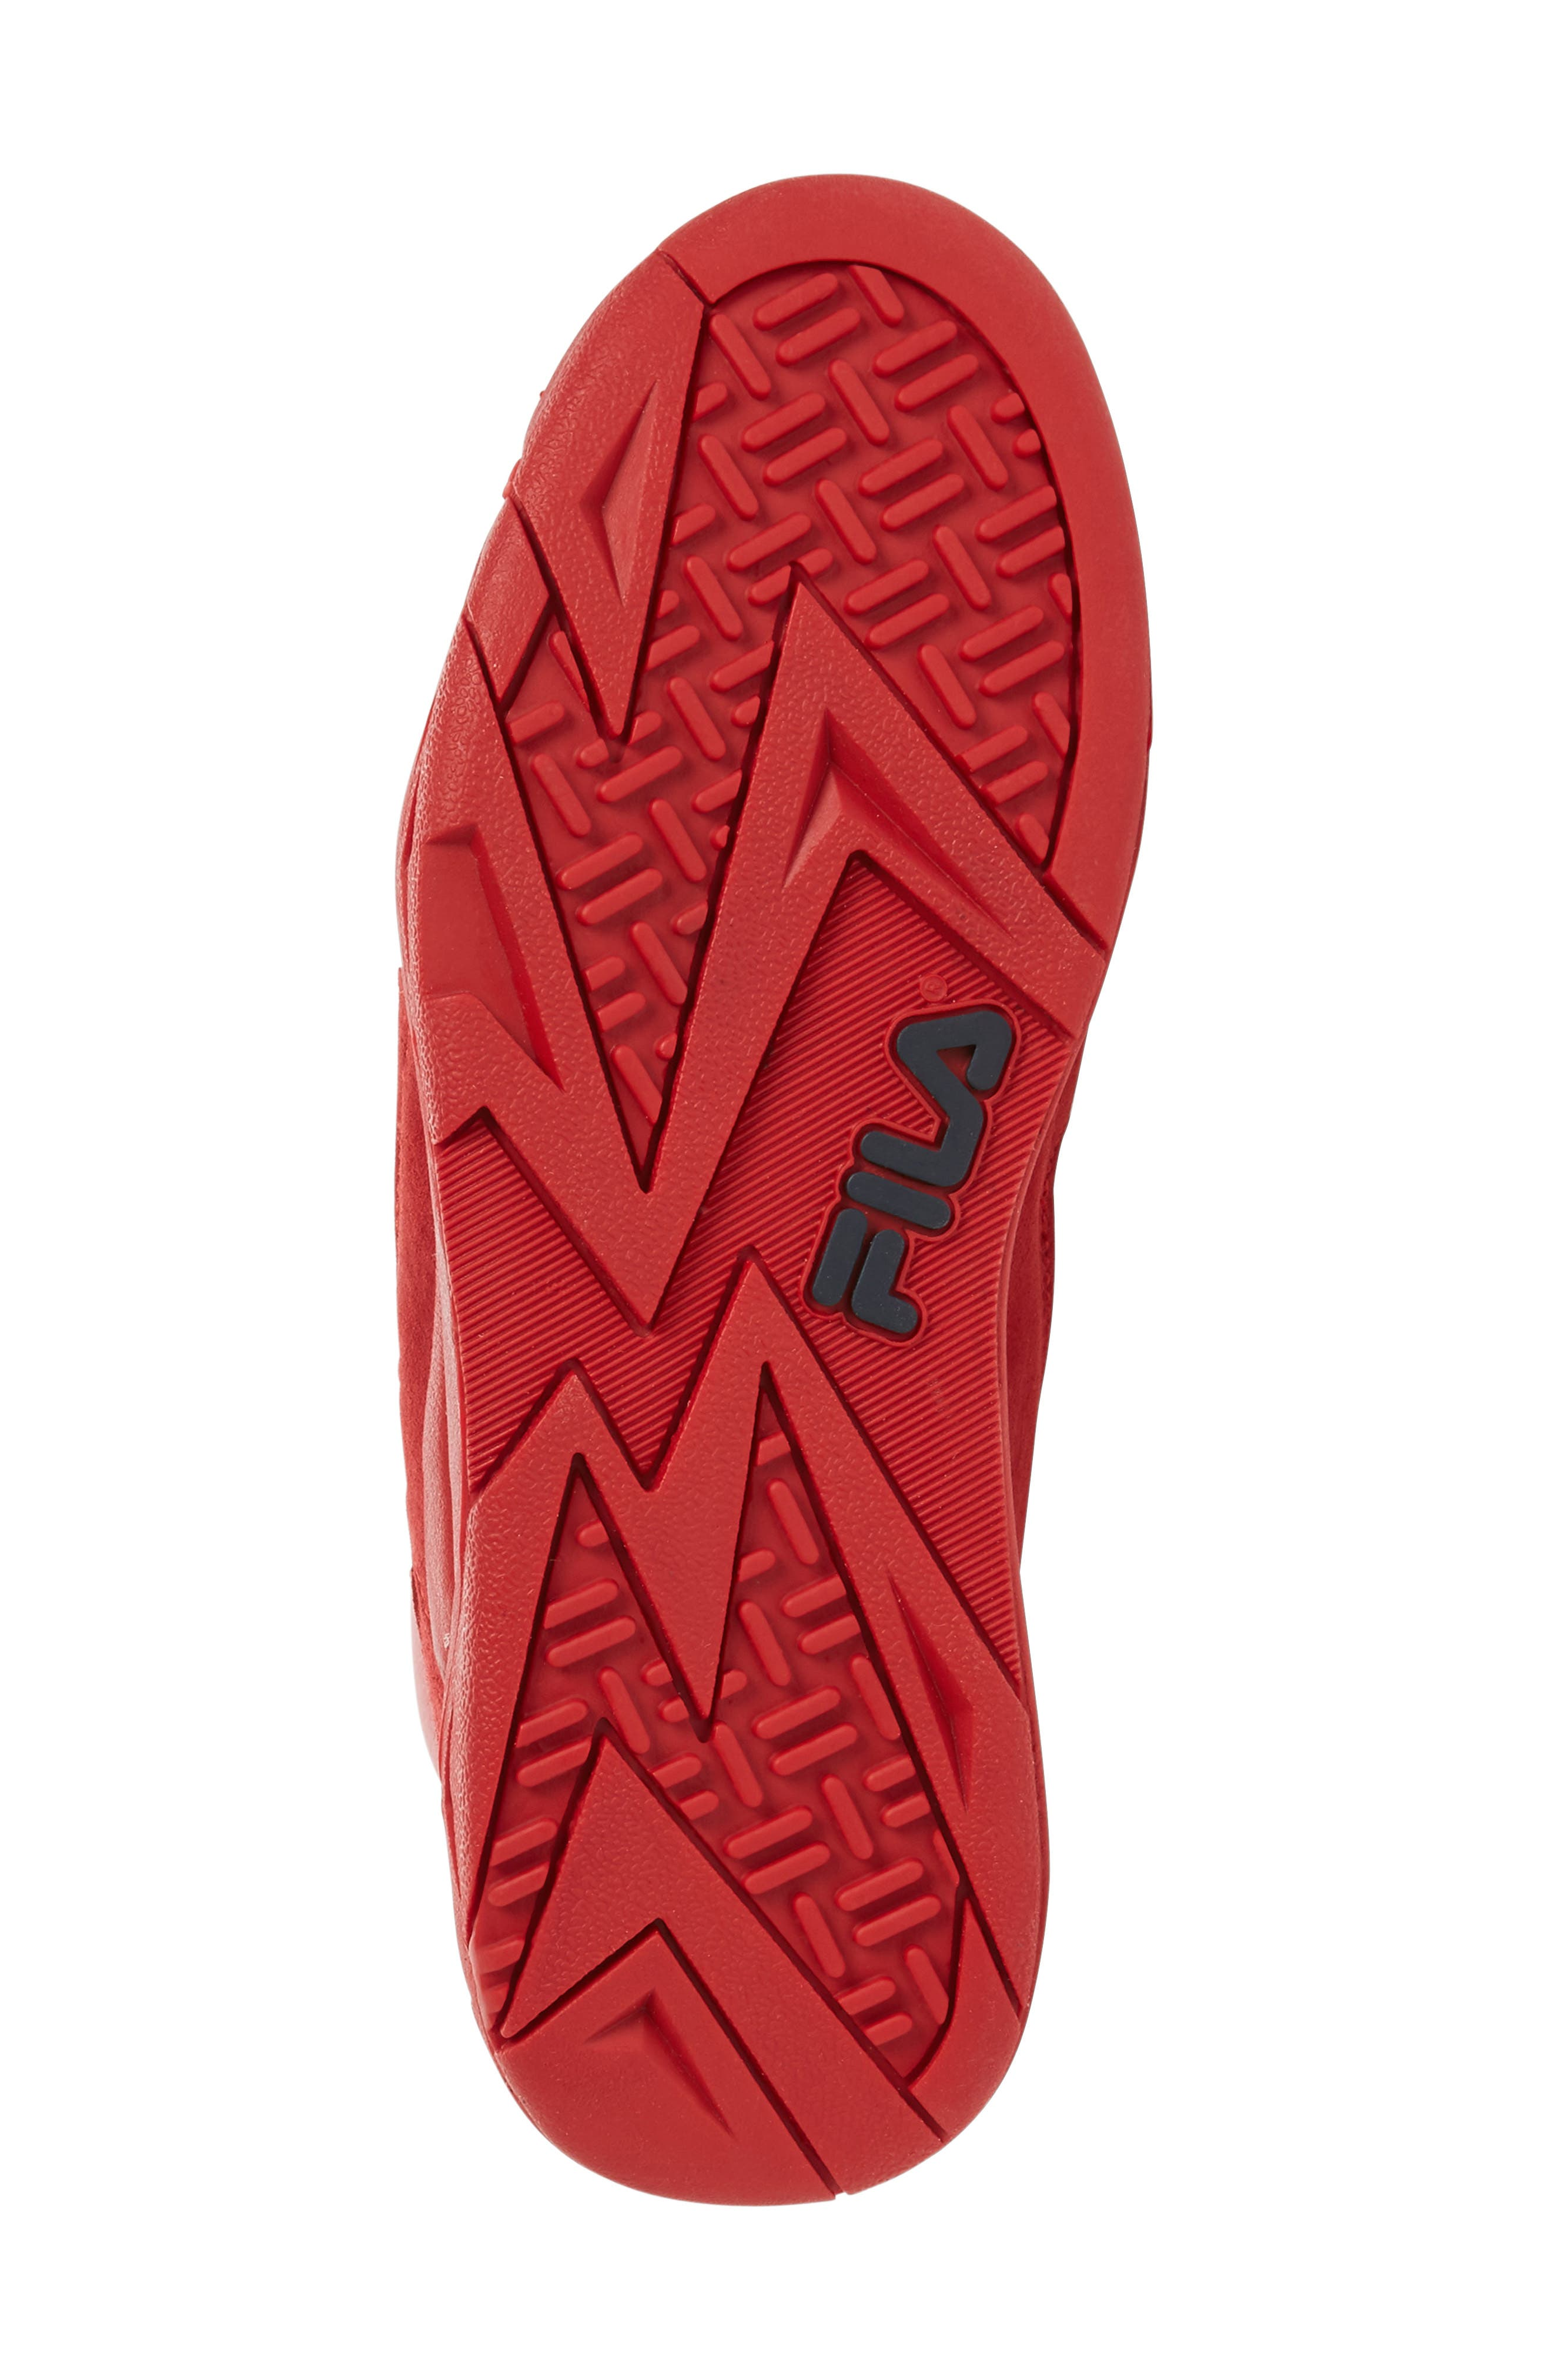 FILA, The Cage High Top Sneaker, Alternate thumbnail 4, color, RED SUEDE